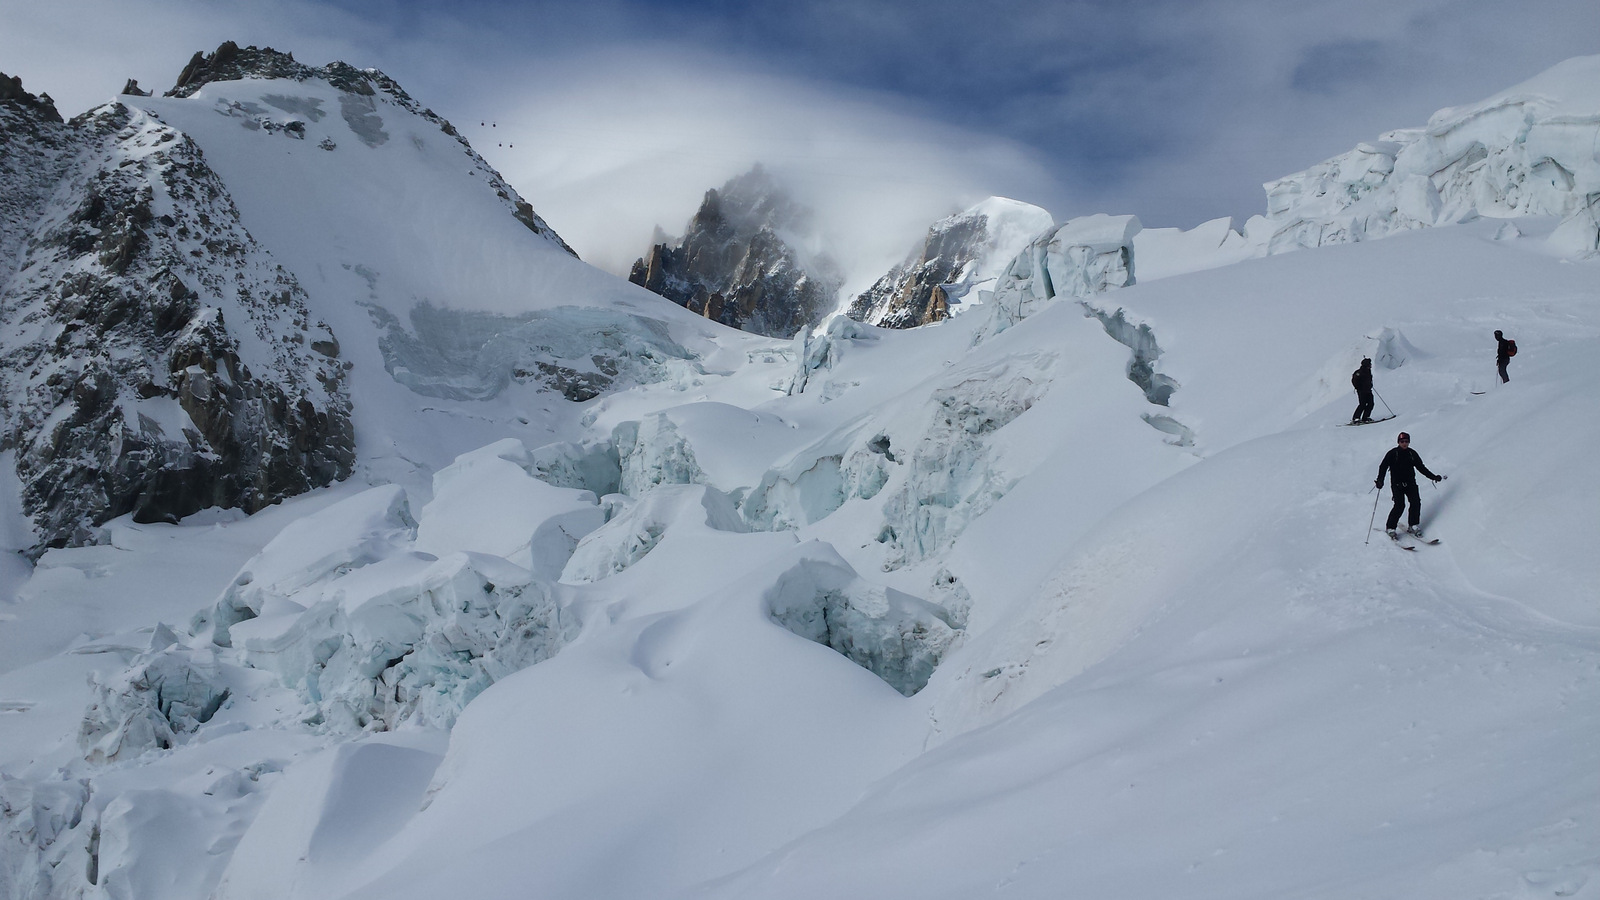 vallee blanche chamonixskiguide